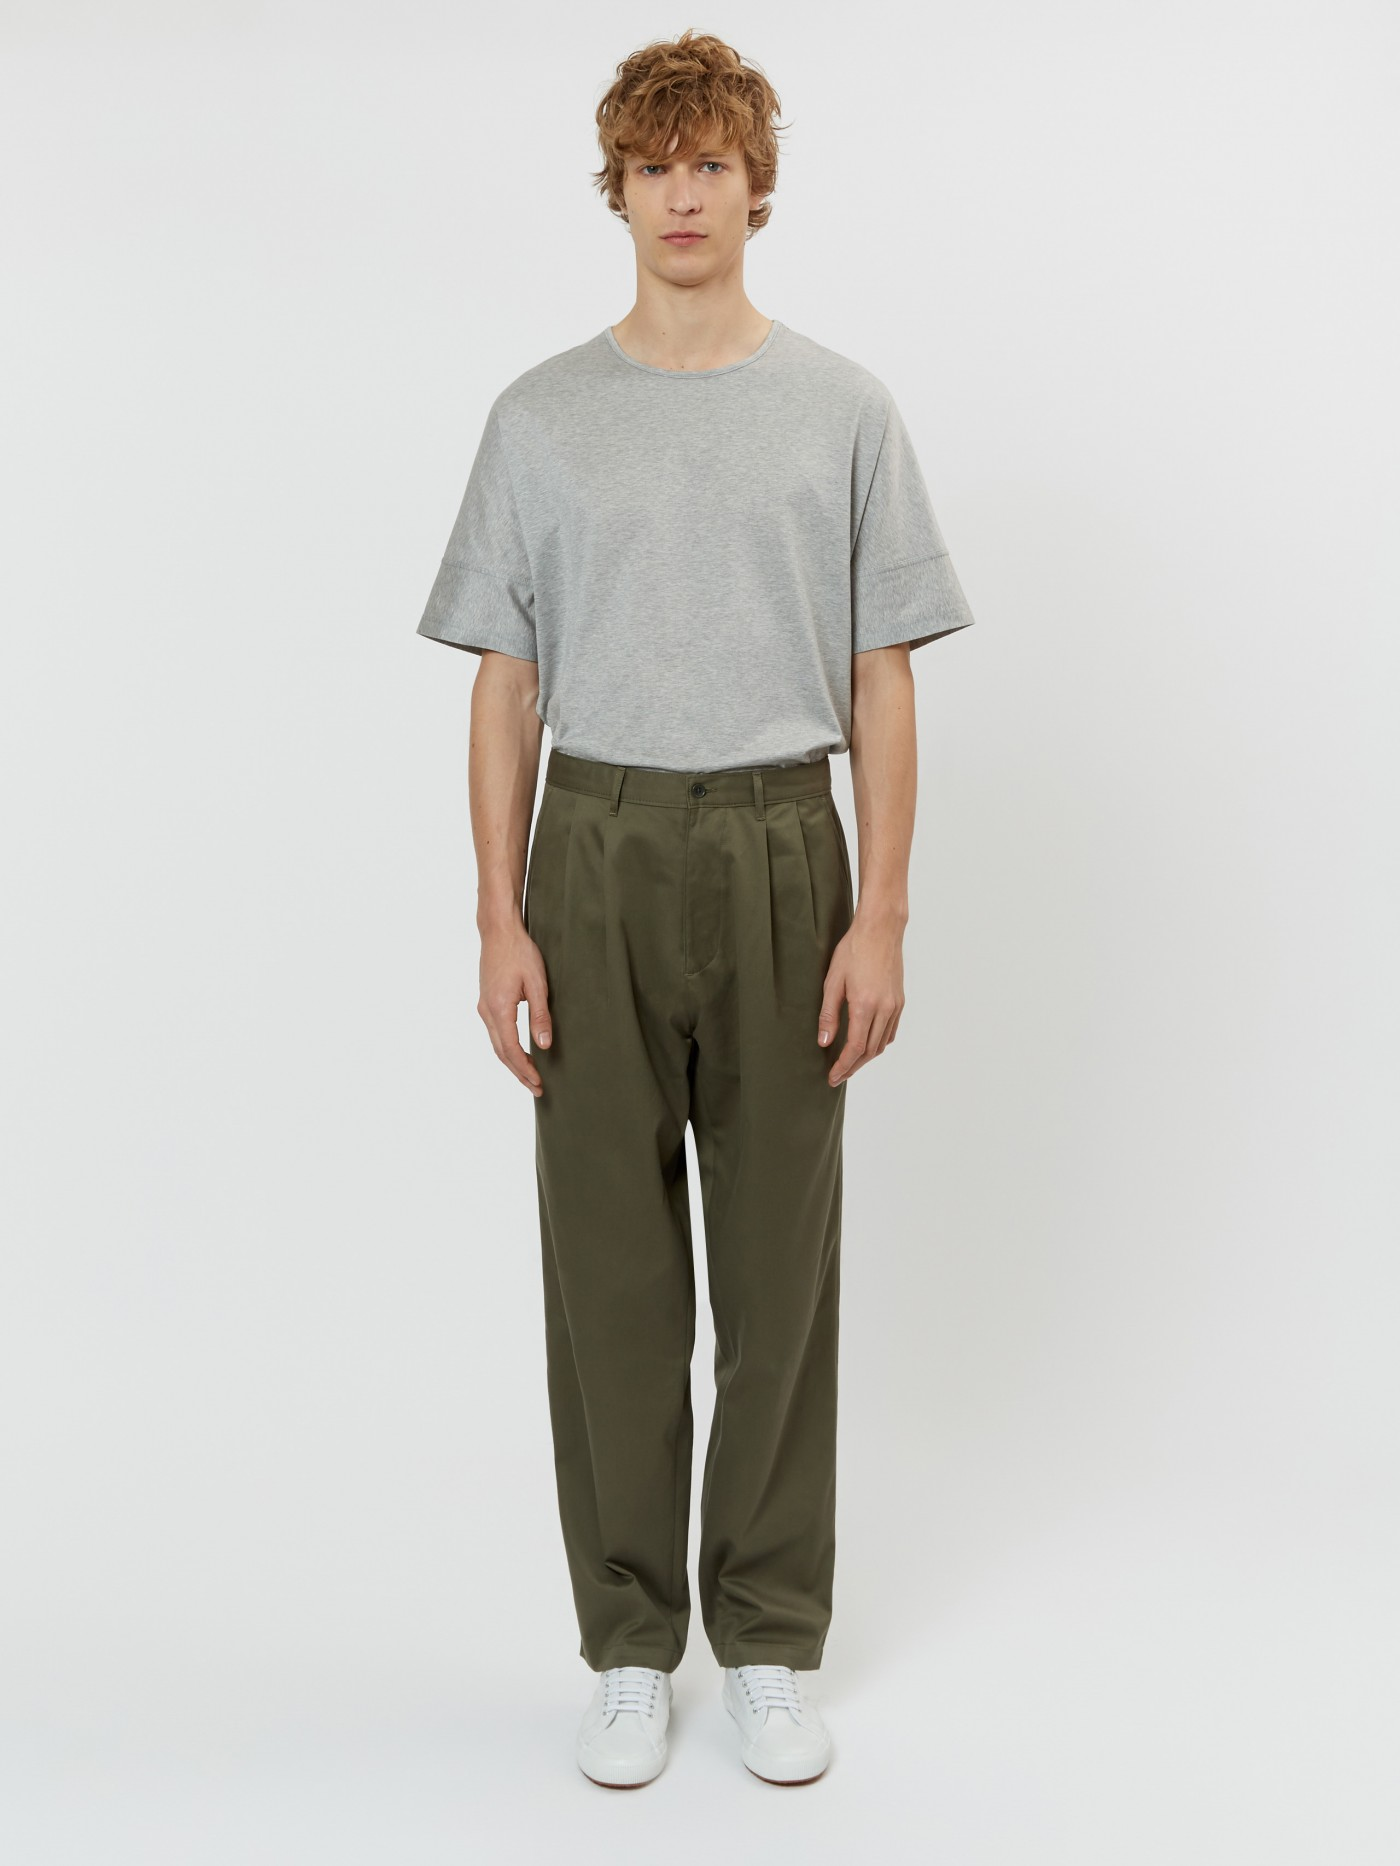 E. Tautz Army Green Pleated Chino